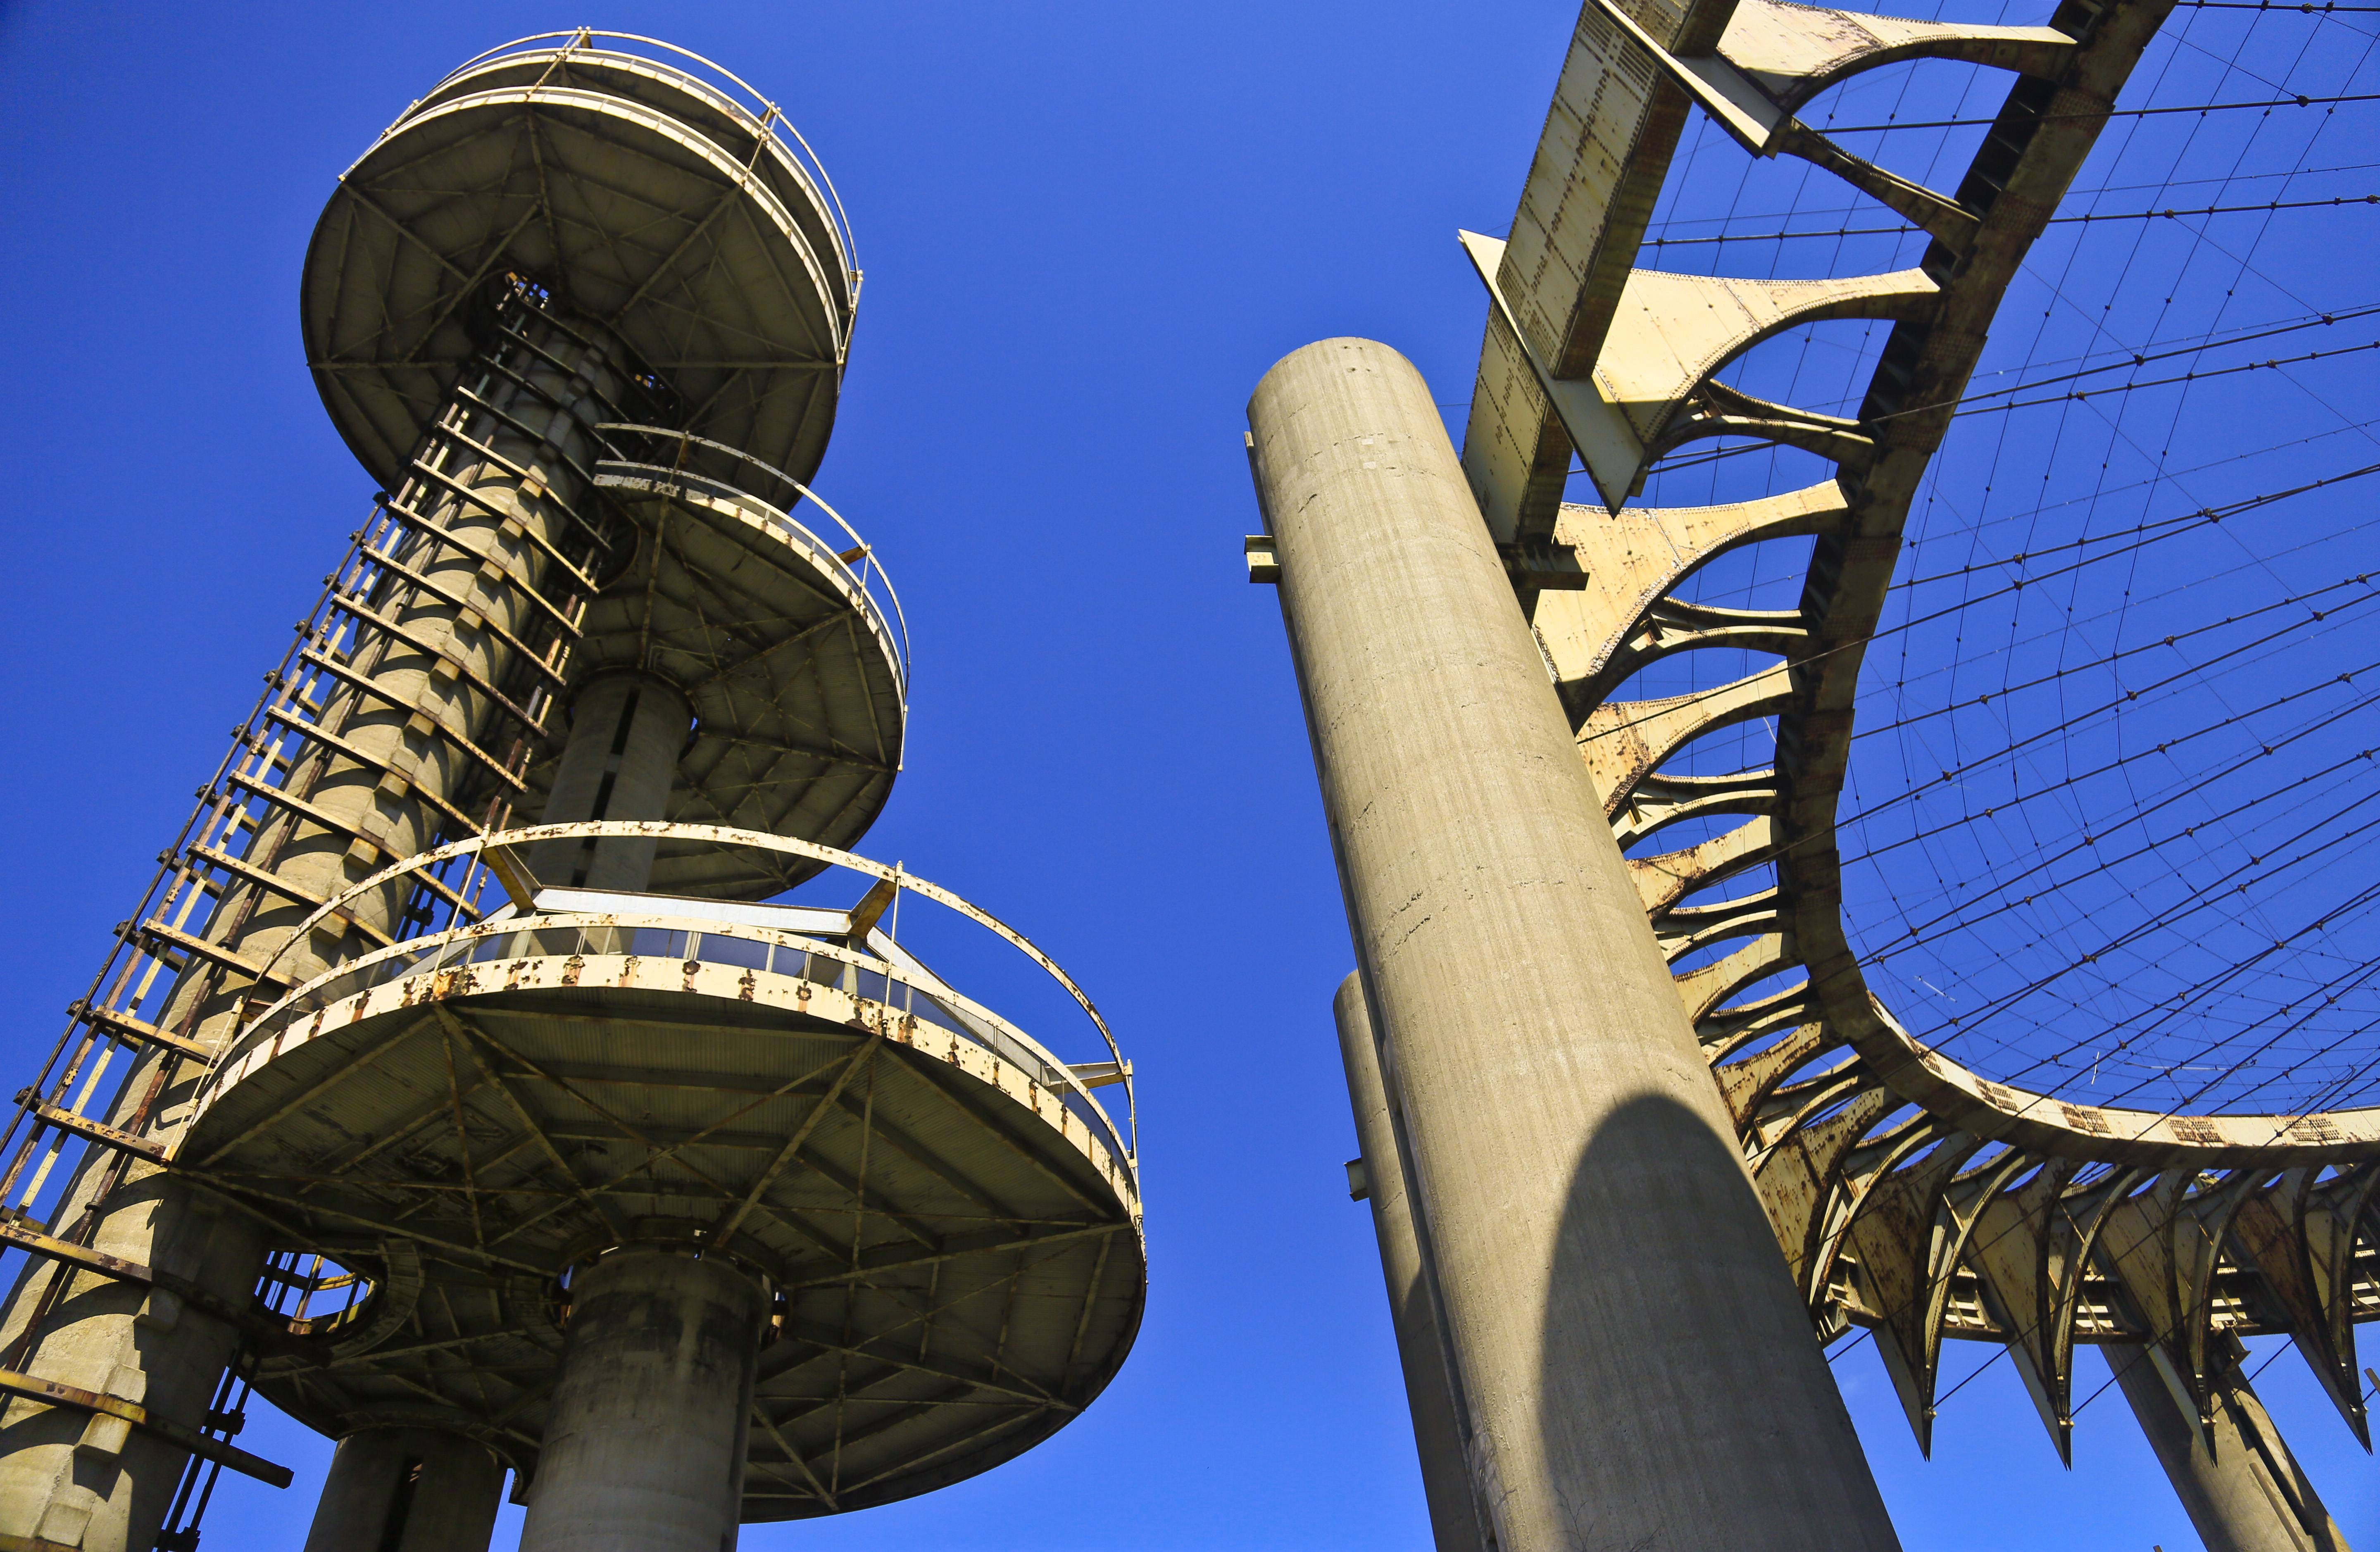 Those looking to soak up a little nostalgia on the 1964 World's Fair's 50th anniversary can visit the space-age towers, topped by flying-saucer-like platforms, and a ring of pillars that once housed the New York State Pavilion in New York.